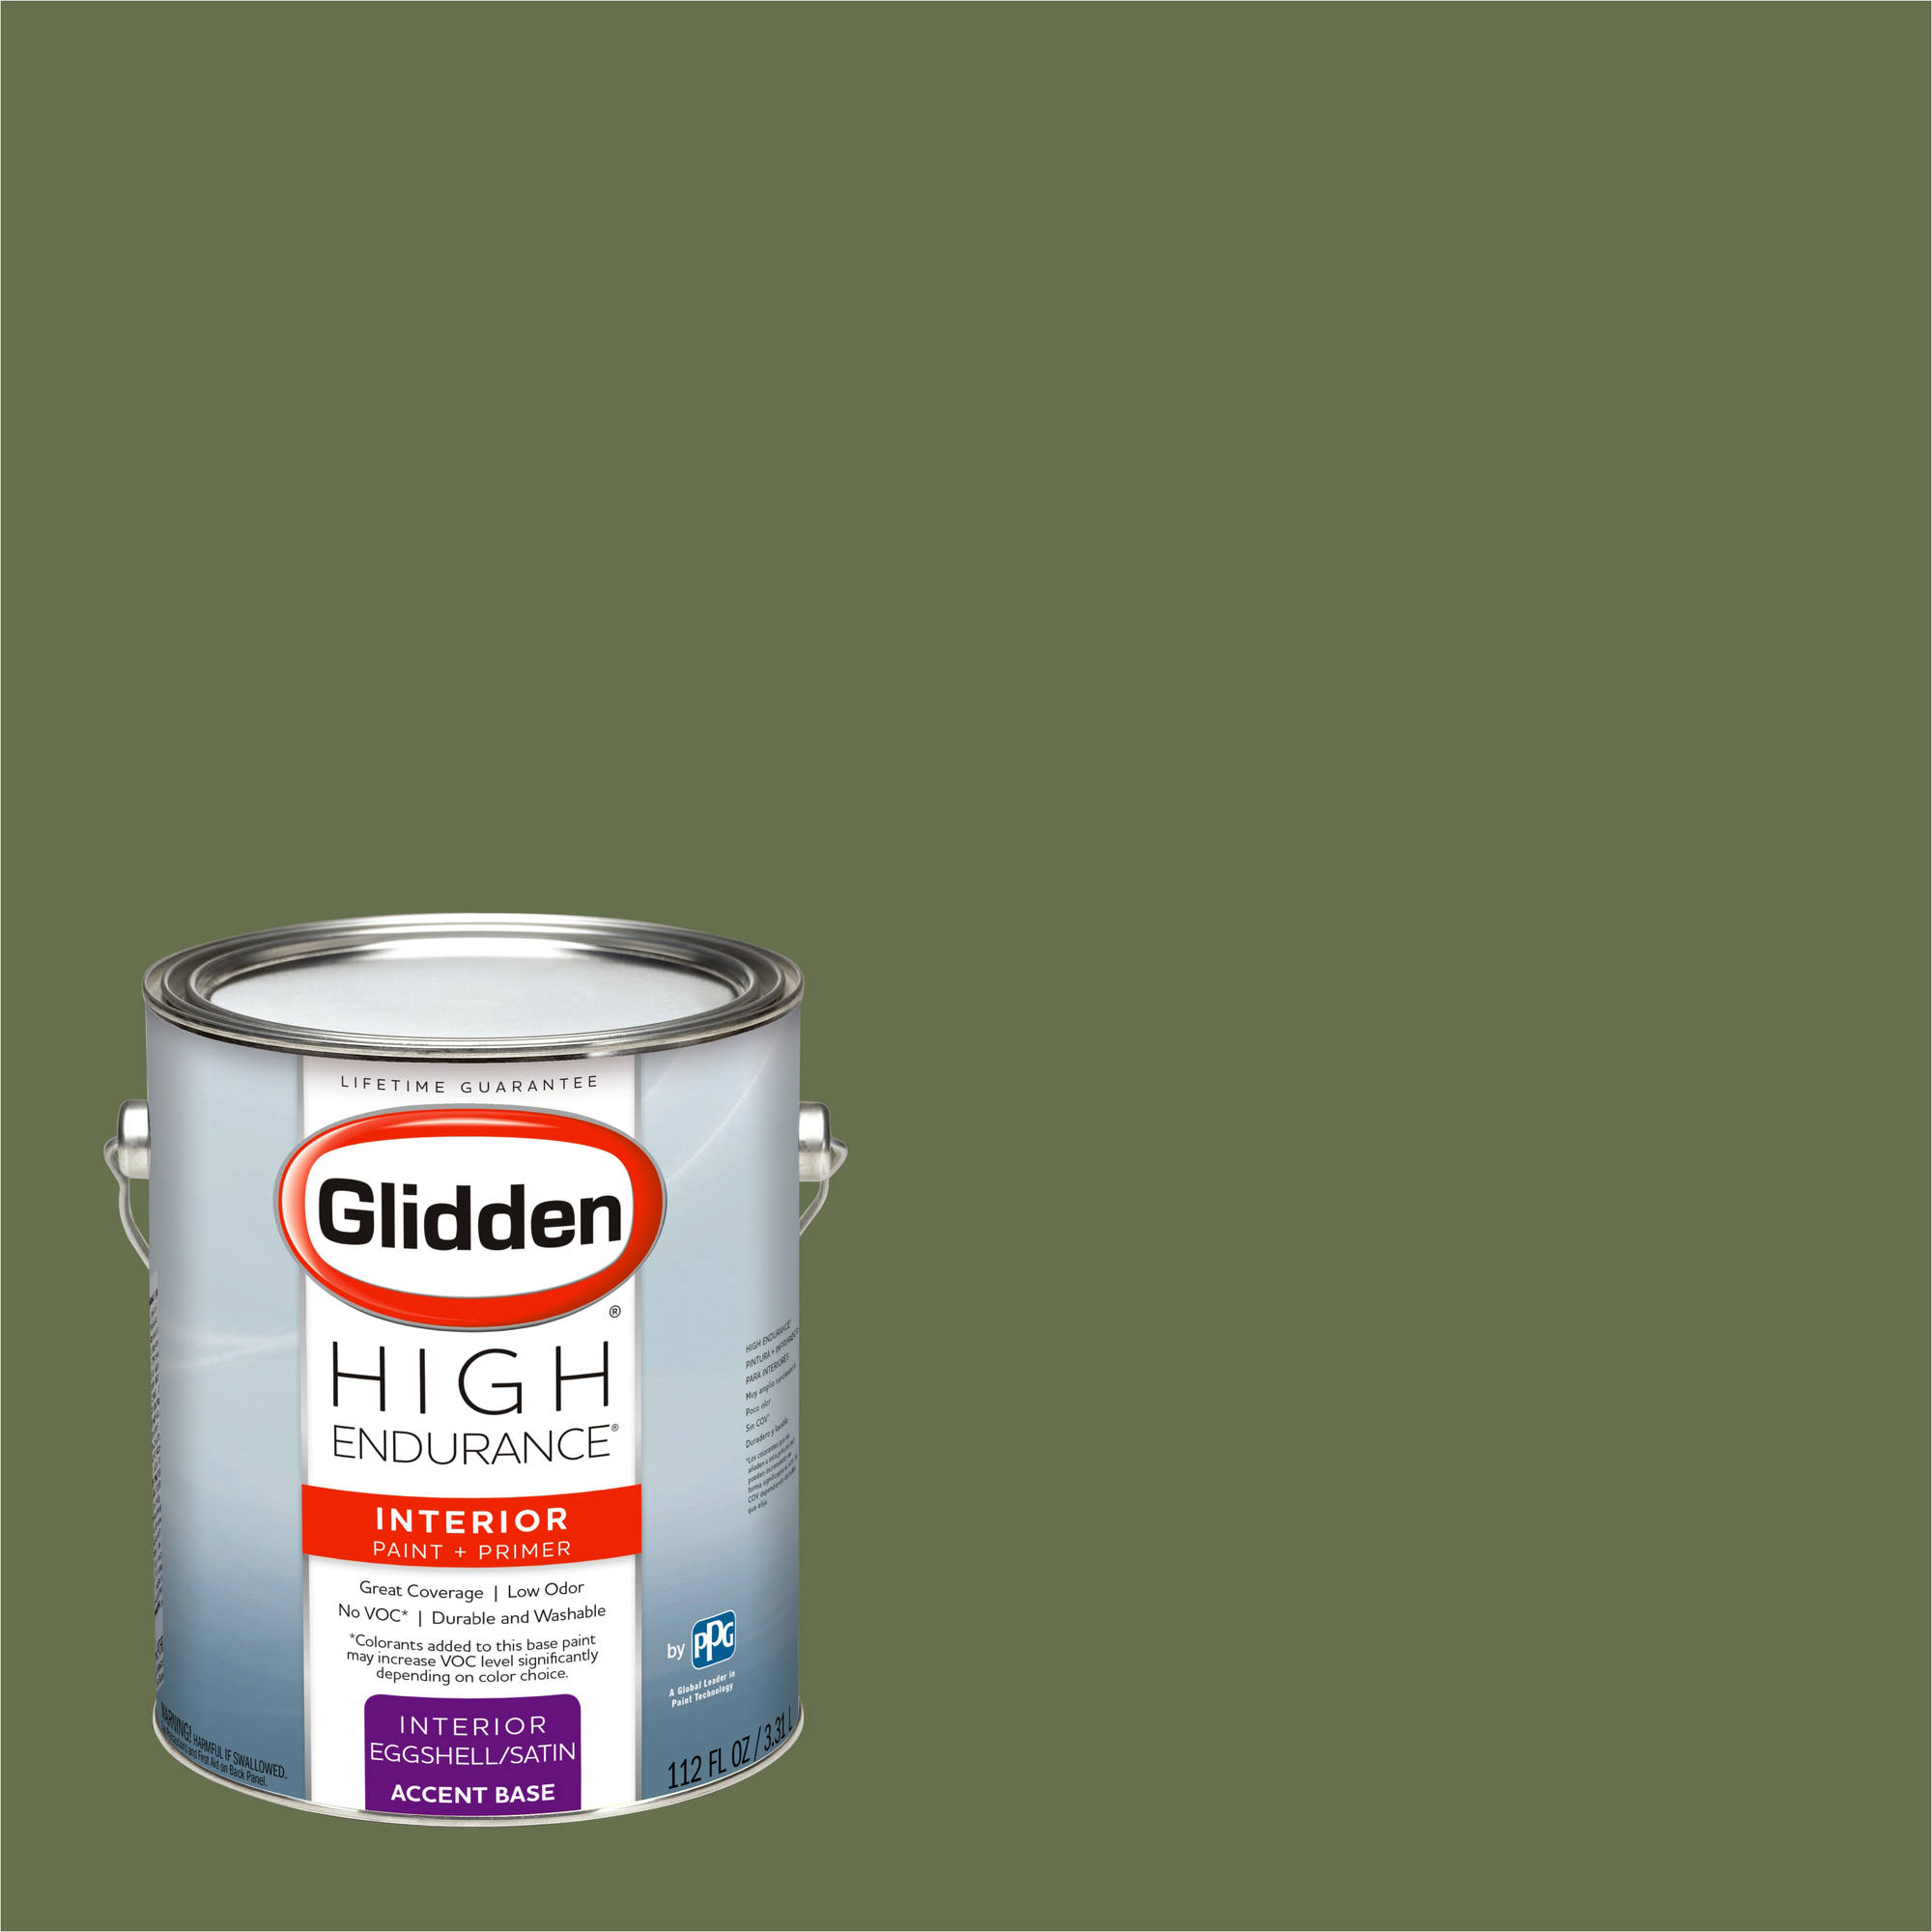 Glidden High Endurance, Interior Paint and Primer, Afternoon Martini Olive, # 10GY 15/213